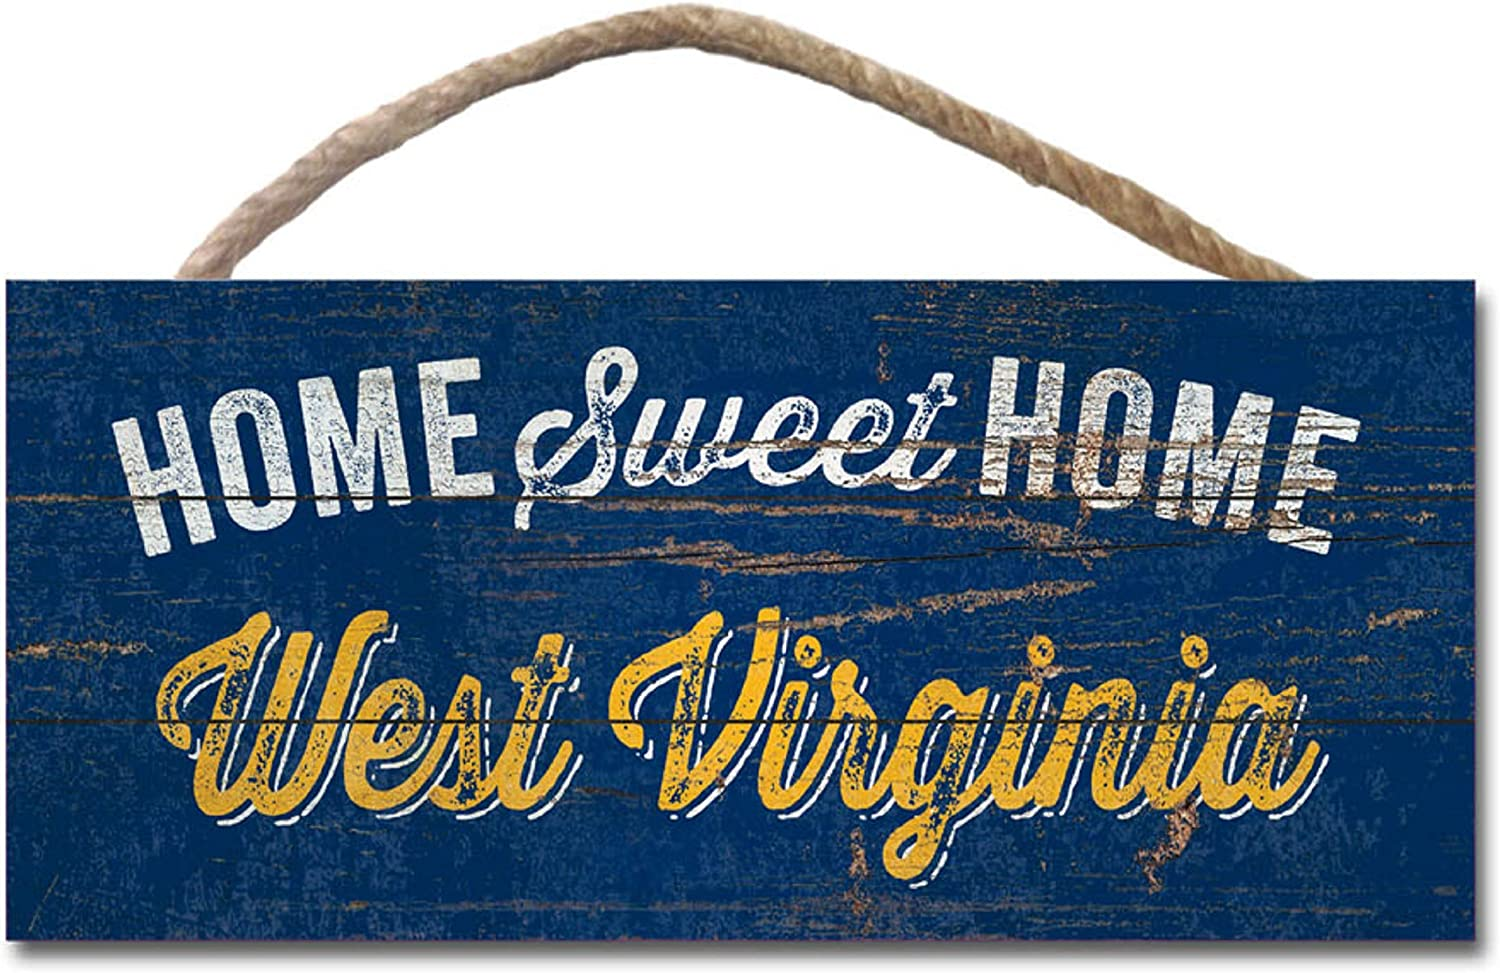 Legacy NCAA Fan Shop Wood Plank Hanging Sign 10x5